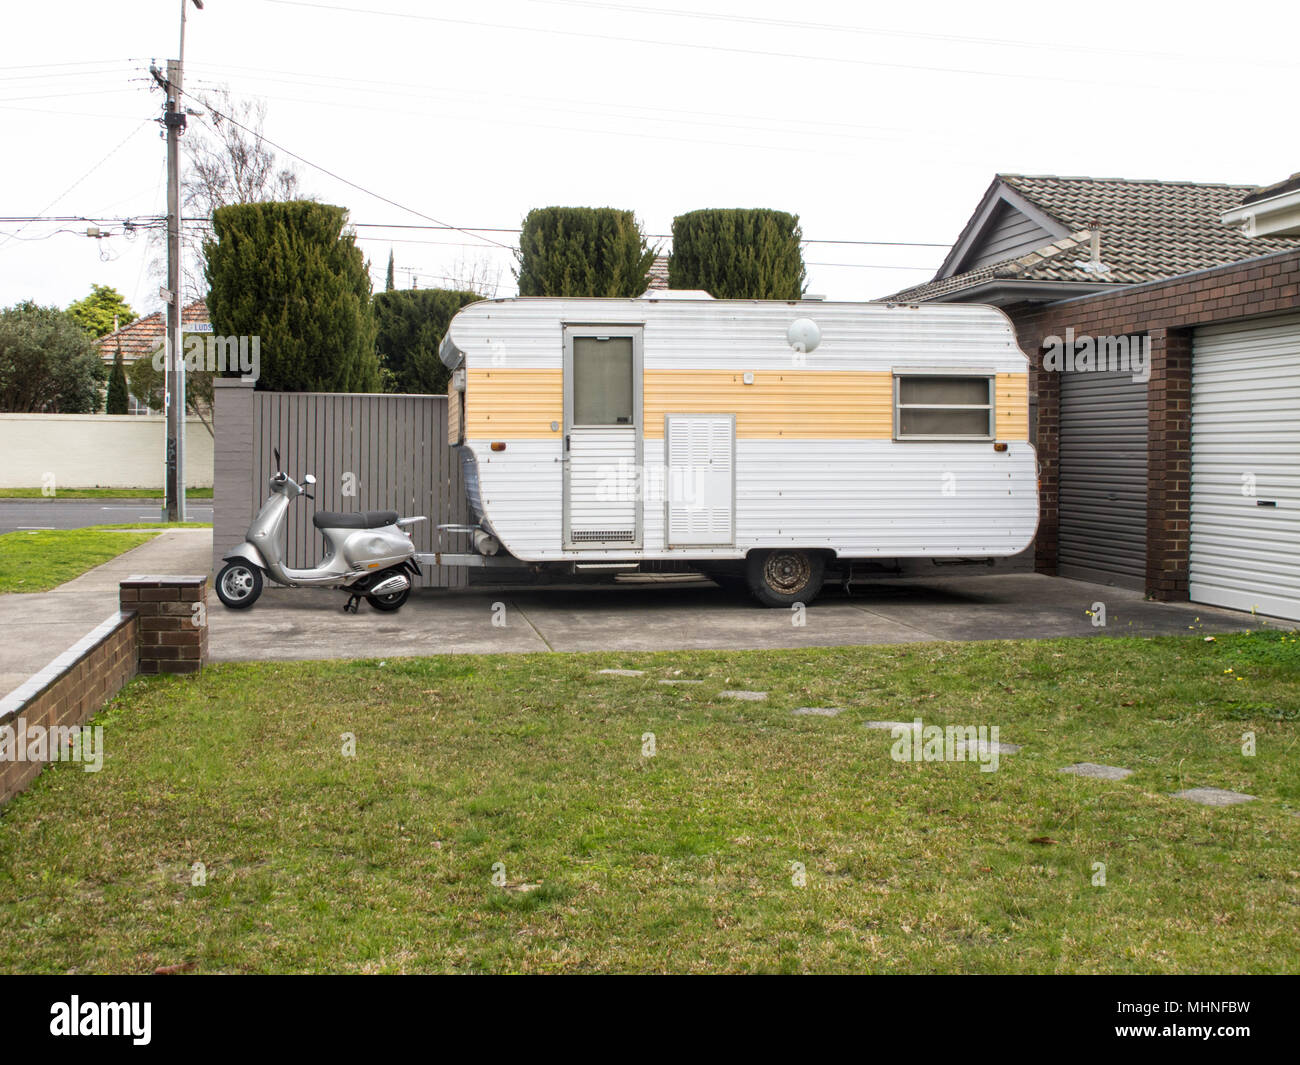 A fun picture of a scooter placed in front of a caravan. - Stock Image